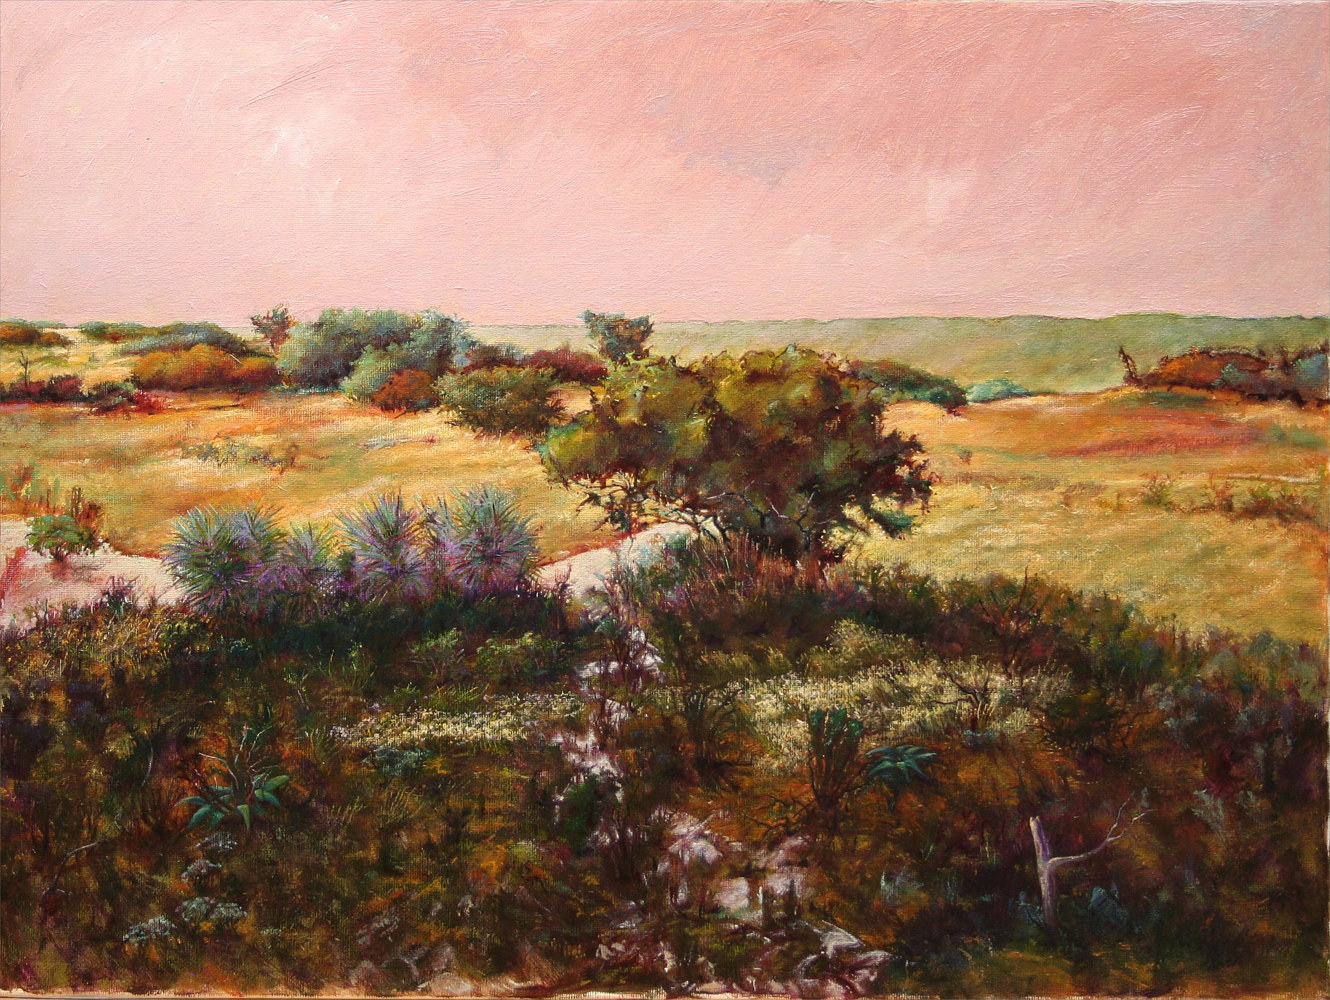 From Where the Fox Appeared, Hughes Ranch,Brady Texas 18x24 by Gary Nowlin